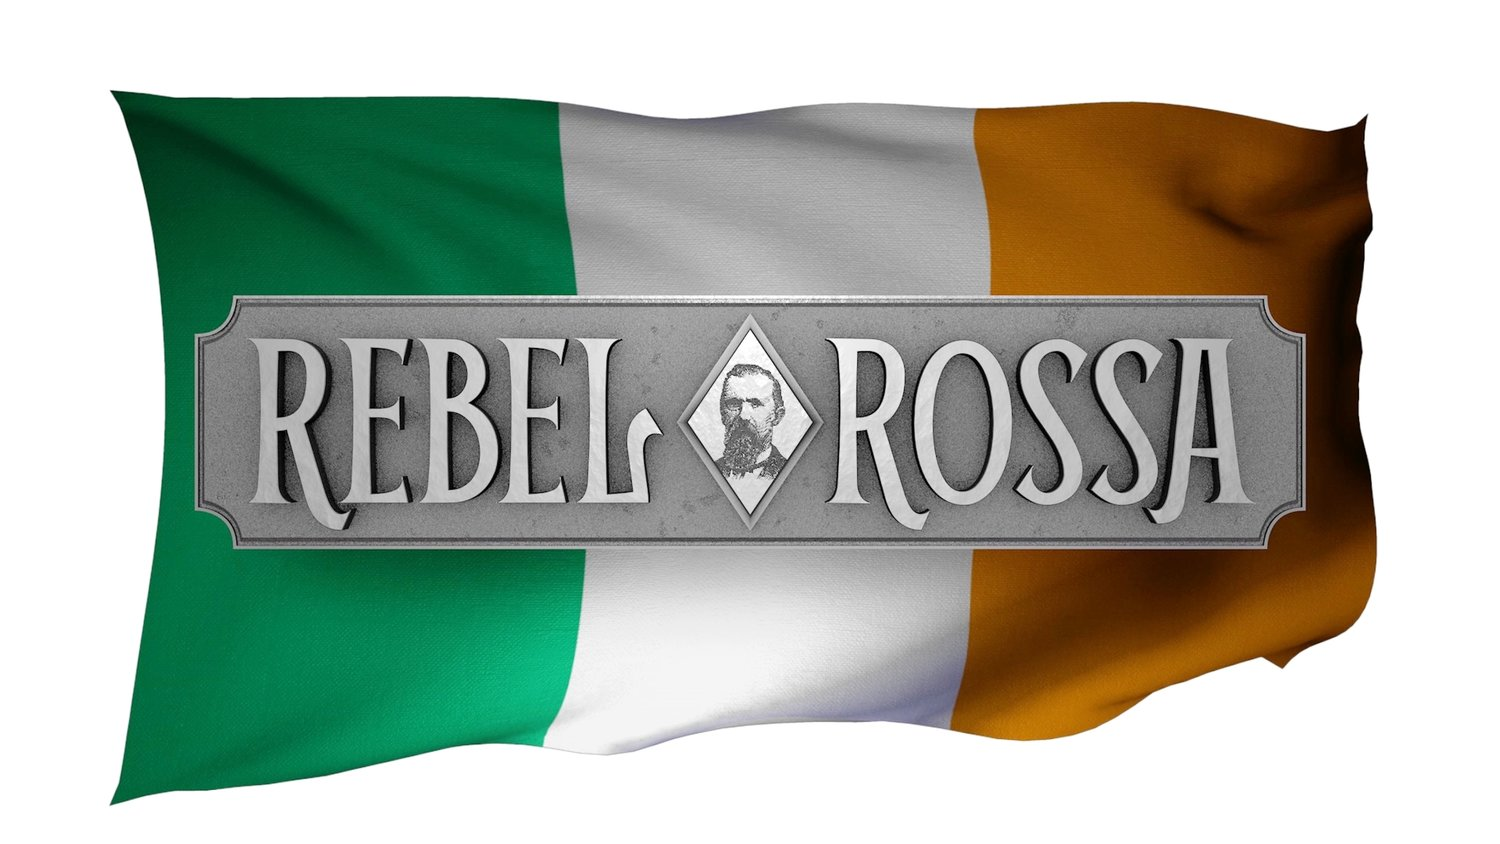 REBEL ROSSA